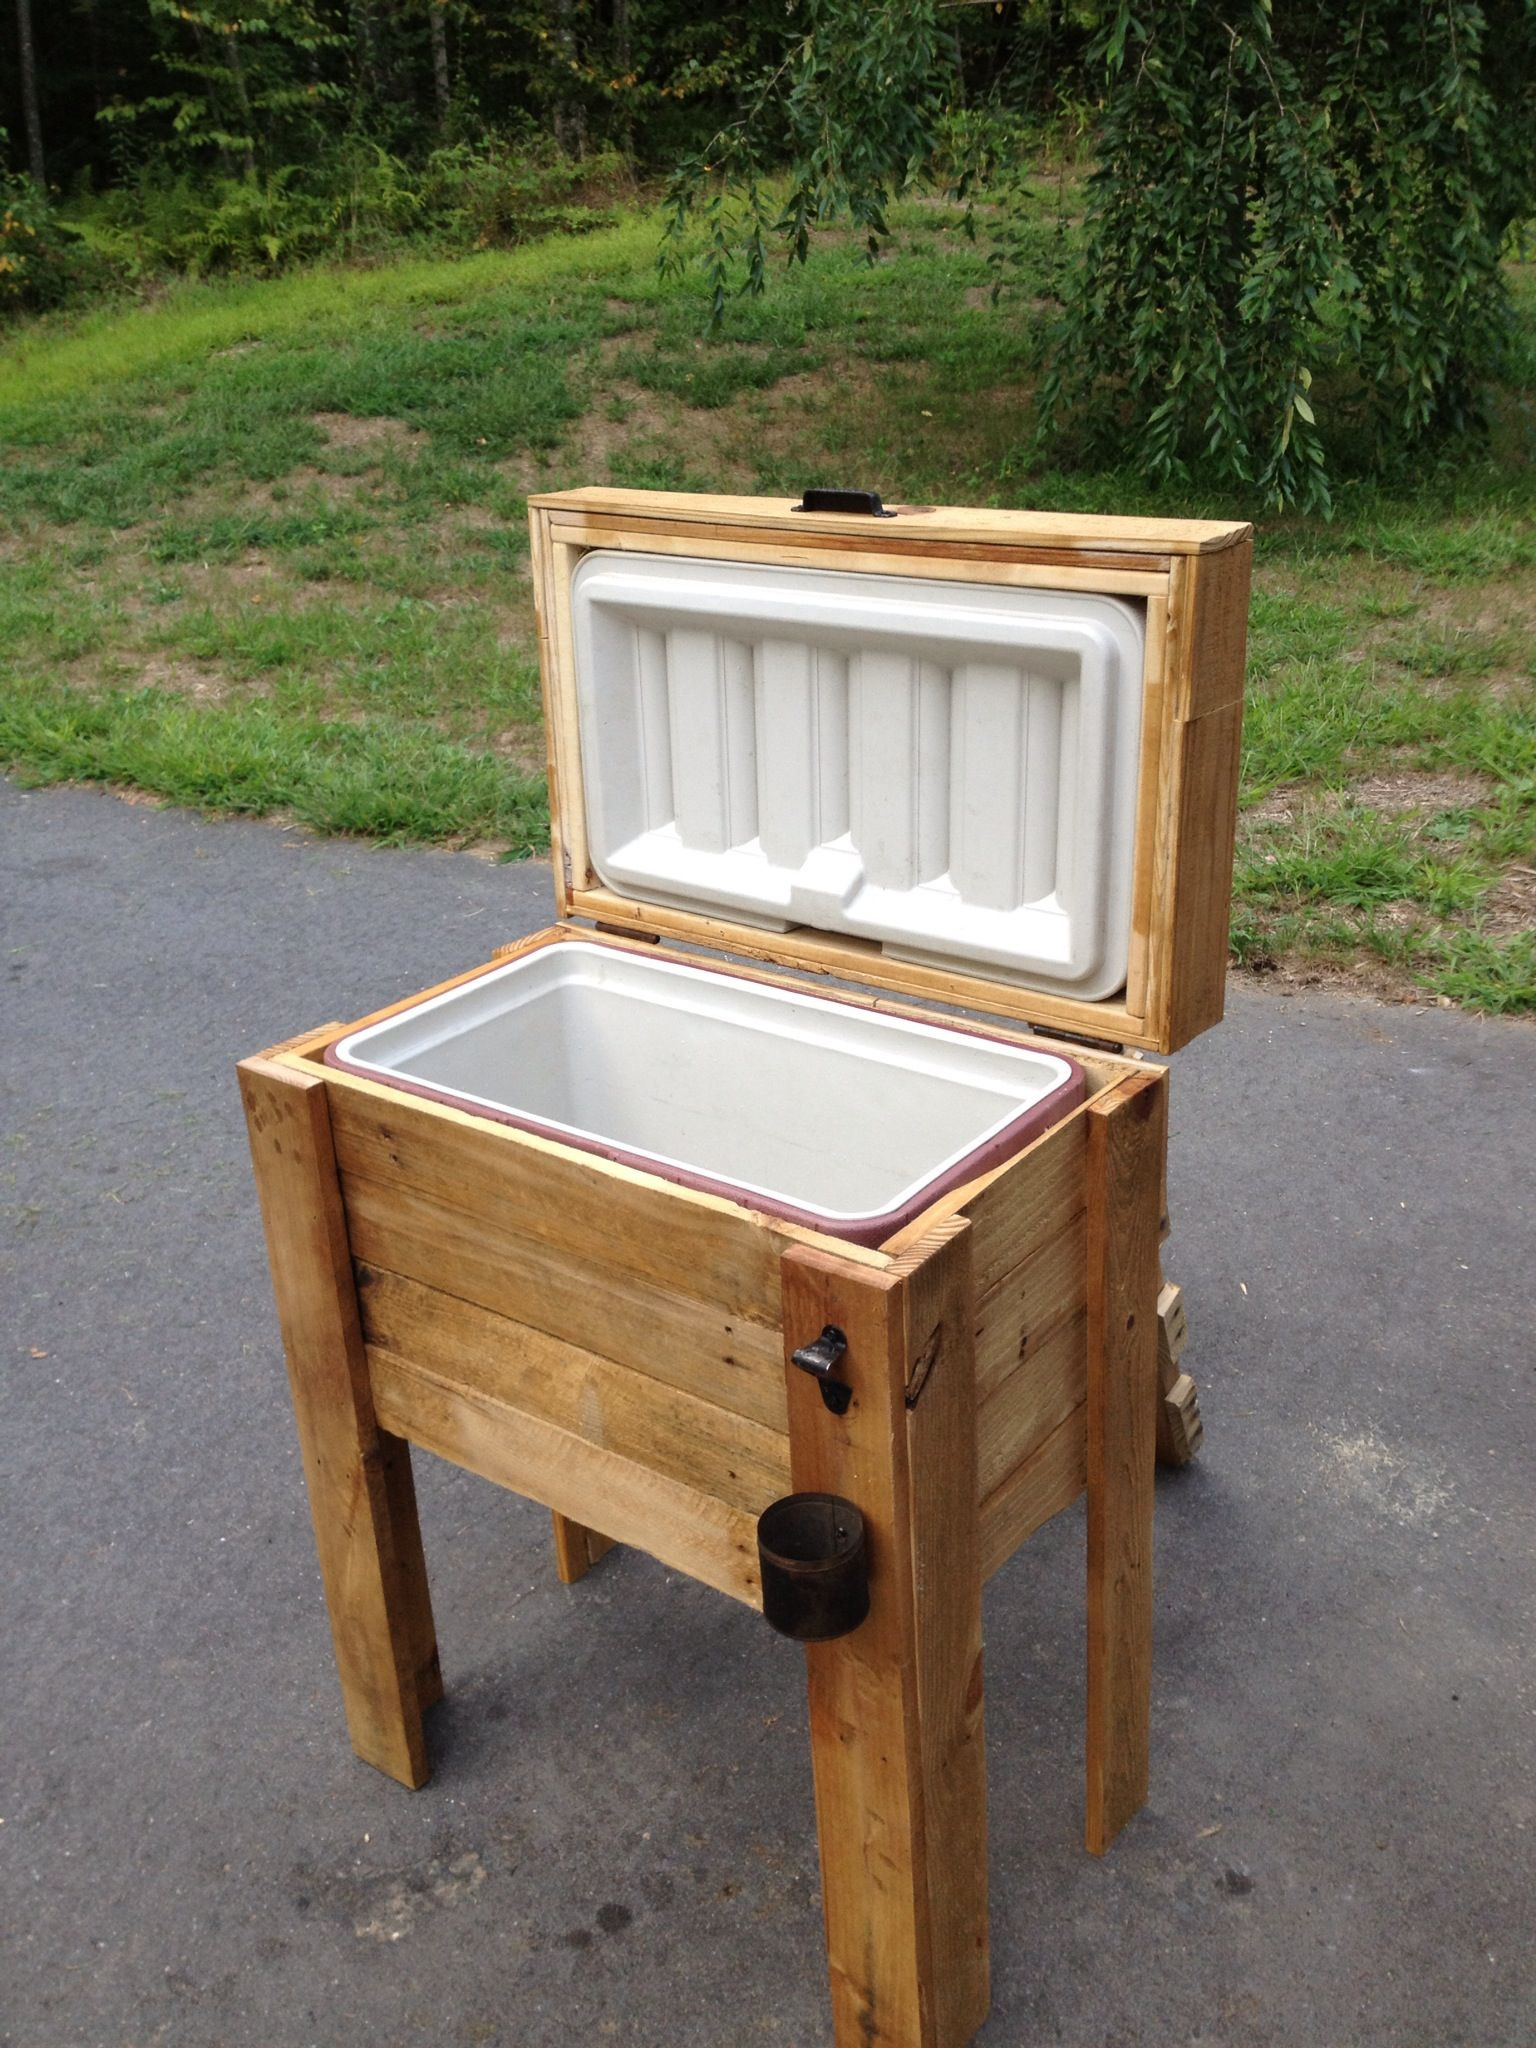 DIY Wood Cooler Box  The wooden cooler my hubby made